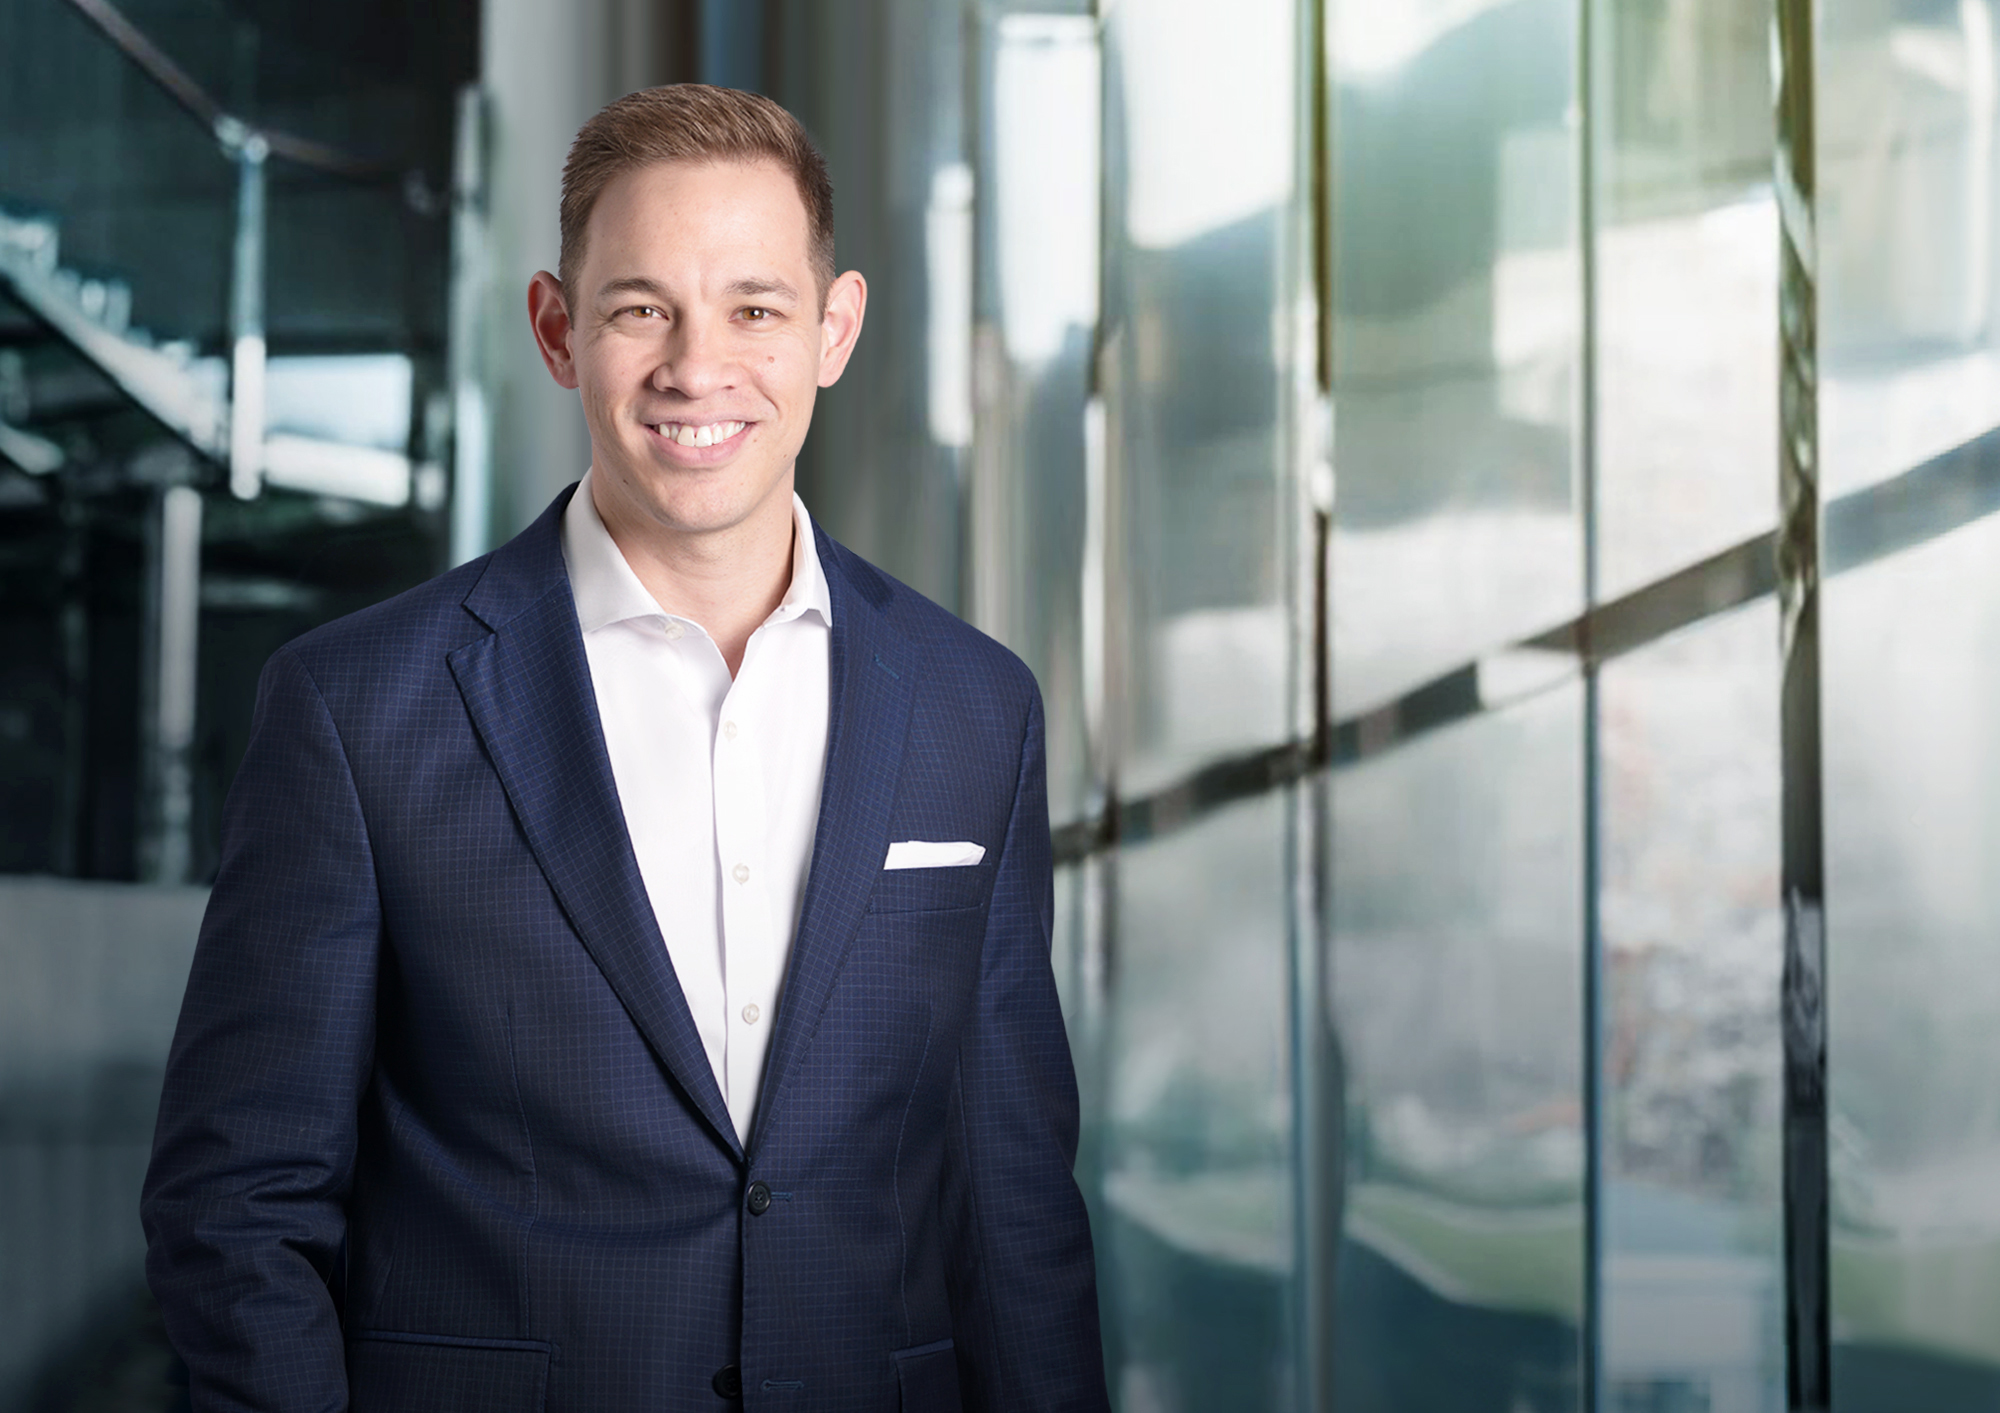 Picture of Johnathan Rankin, Theorem Founder and CEO